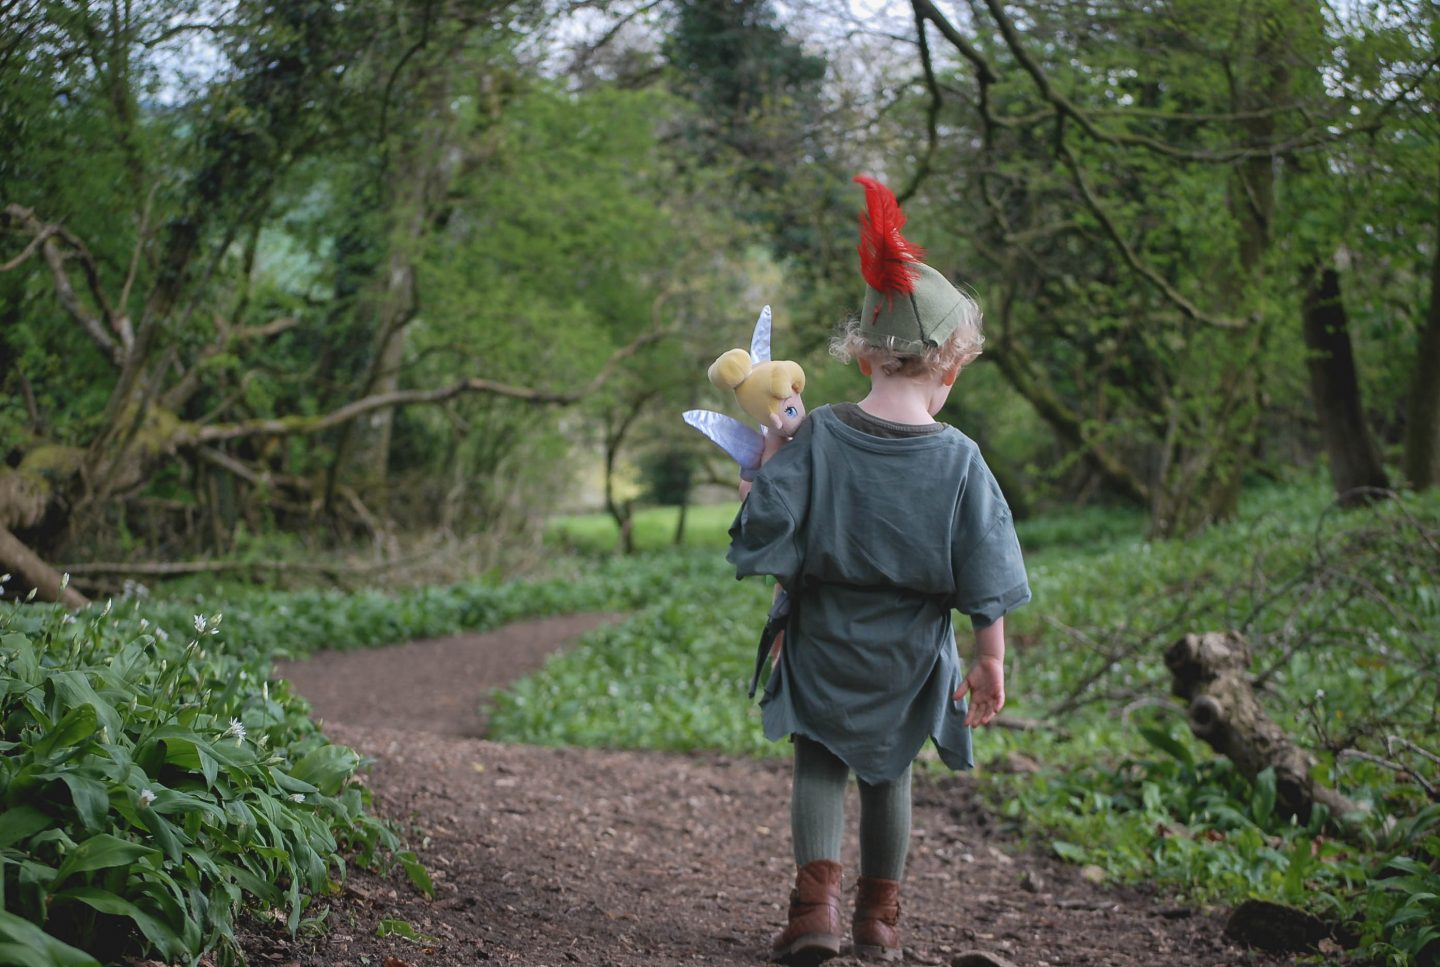 My daughter walking through the woods dressed as Disney's Peter Pan and carrying Tinkerbell